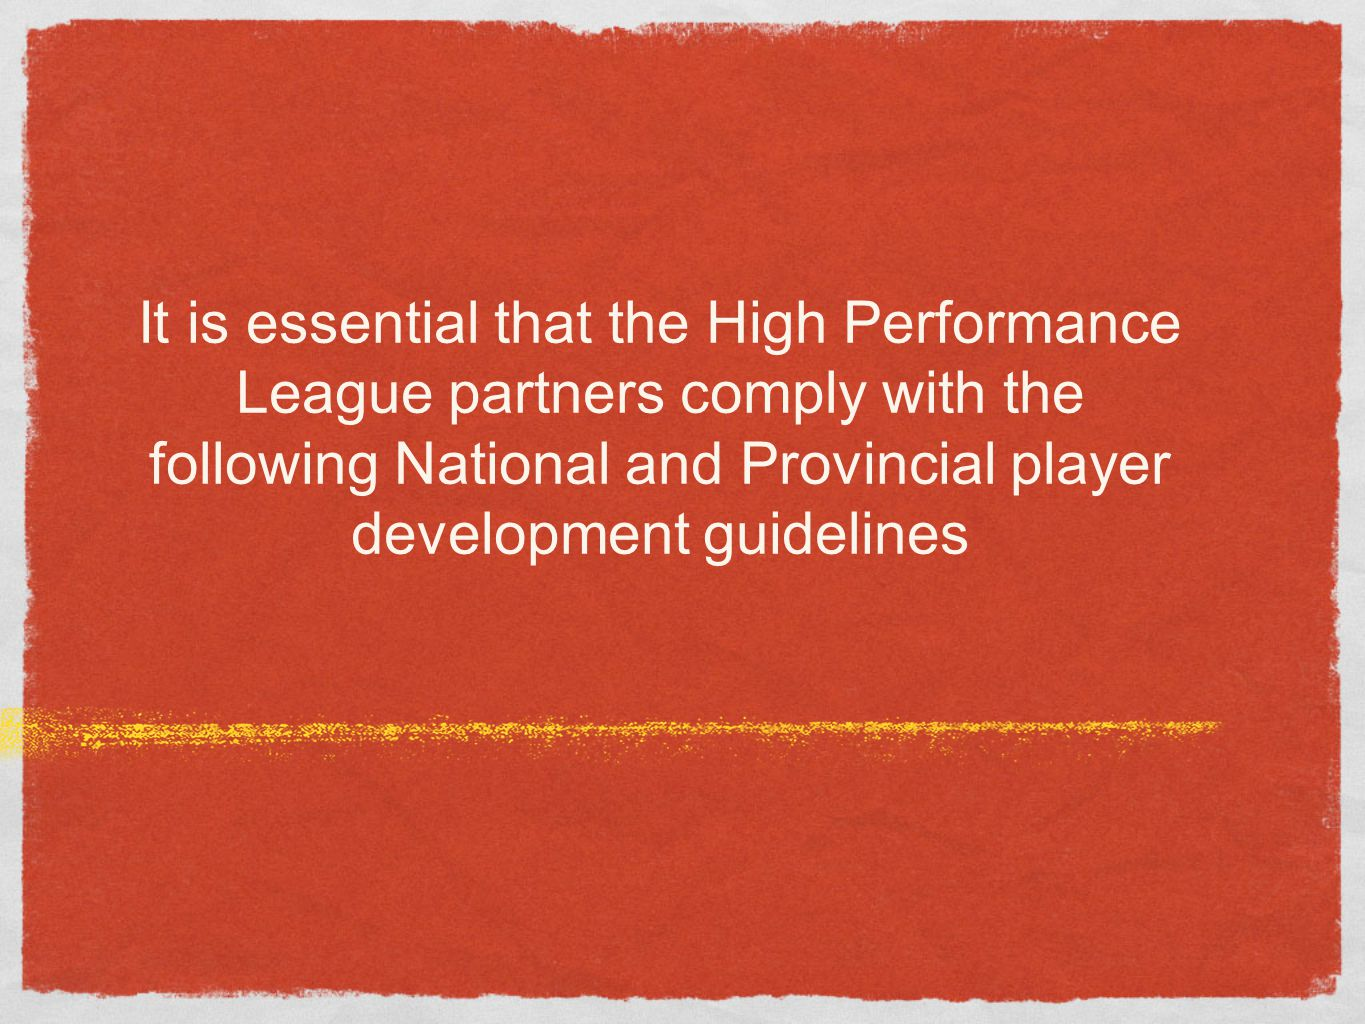 It is essential that the High Performance League partners comply with the following National and Provincial player development guidelines